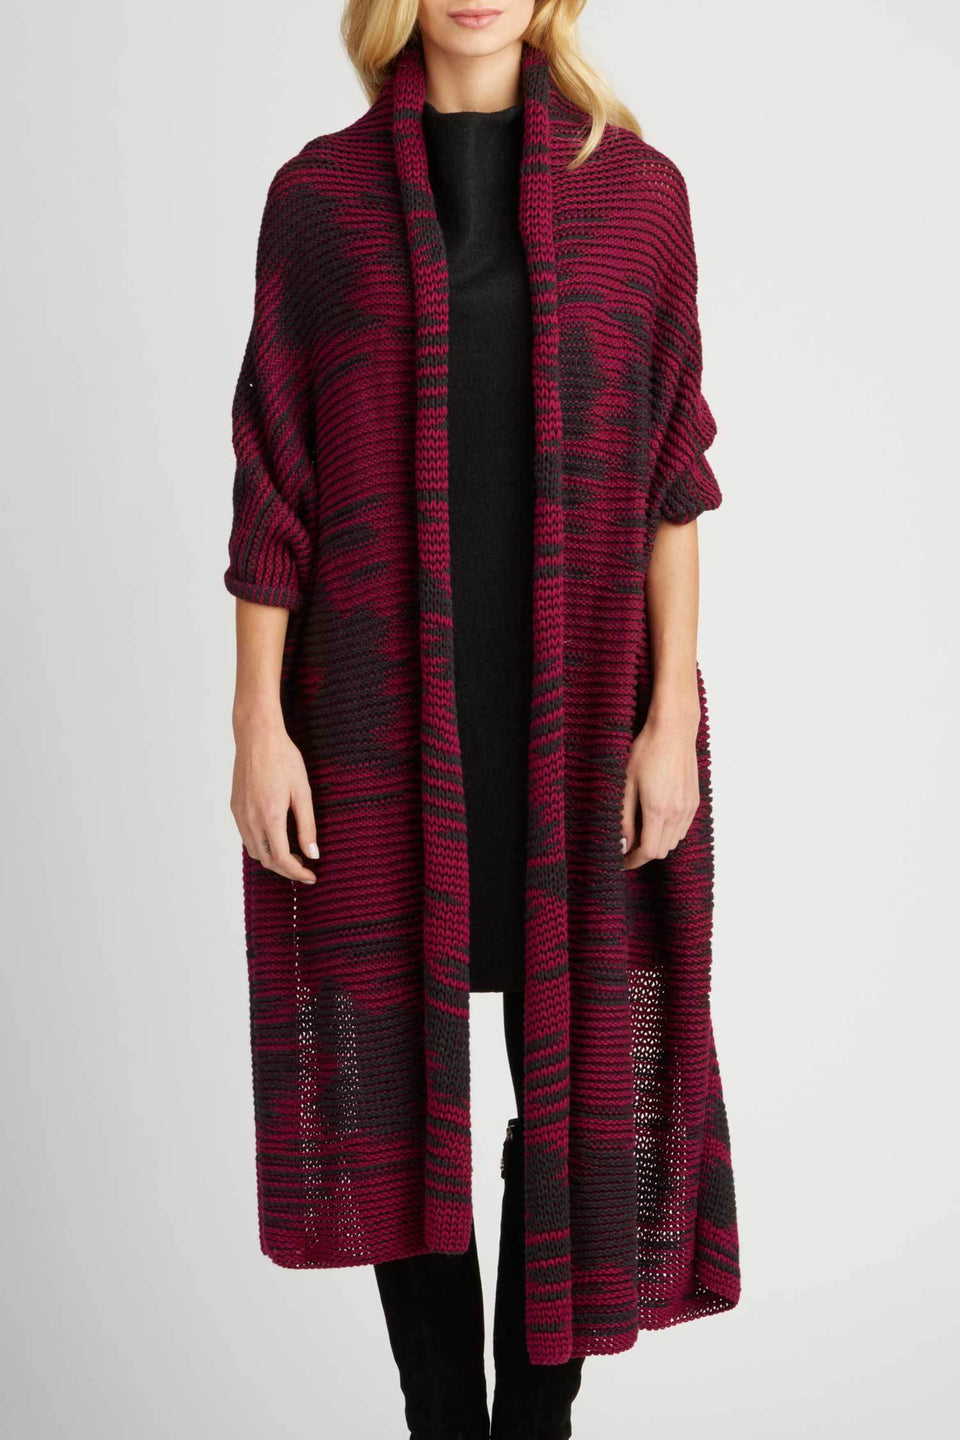 Amaru Knit Wrap in Winterberry and Charcoal